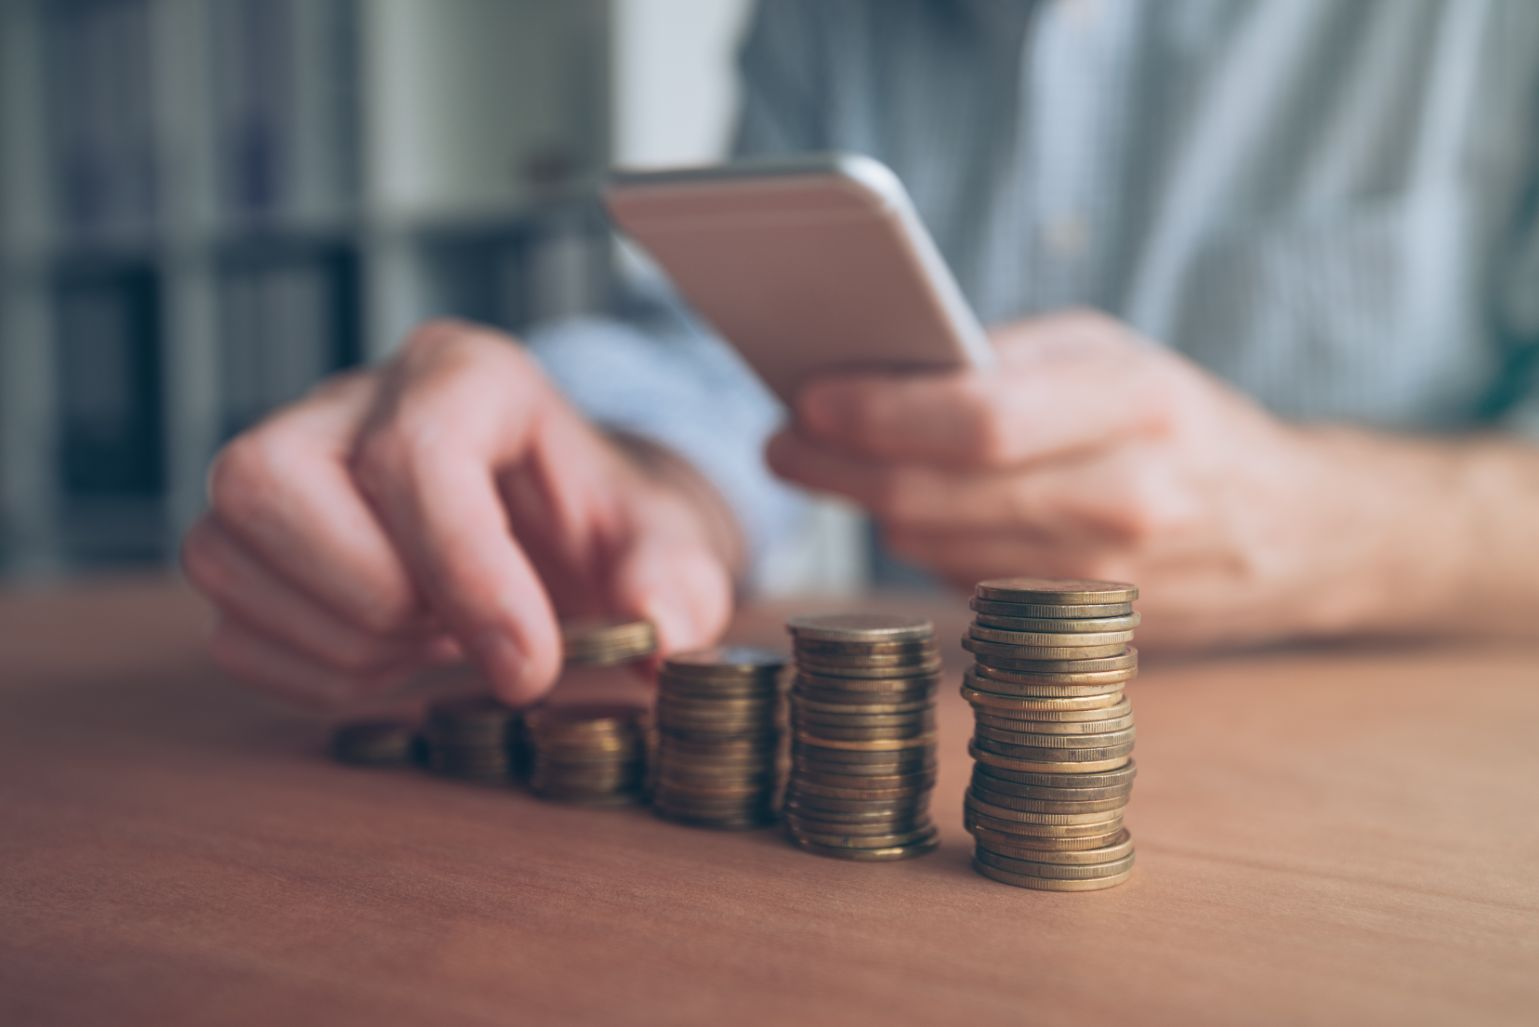 Money Management Tips for College Students in 2020